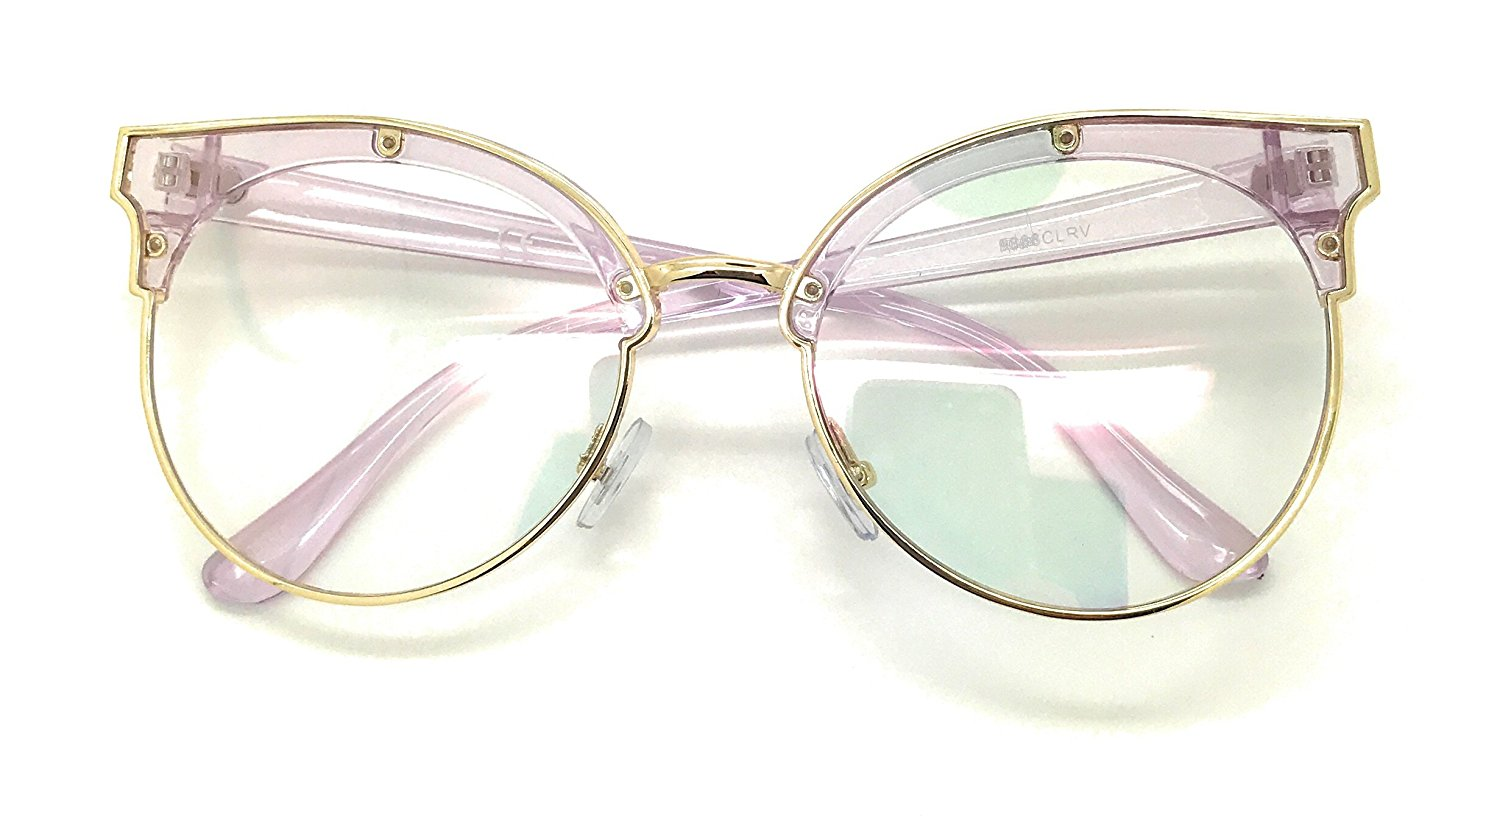 516a4ce9af Get Quotations · Clear Lens Vintage Cateye Optical Eyeglasses Frame Plain  Oversized Glasses